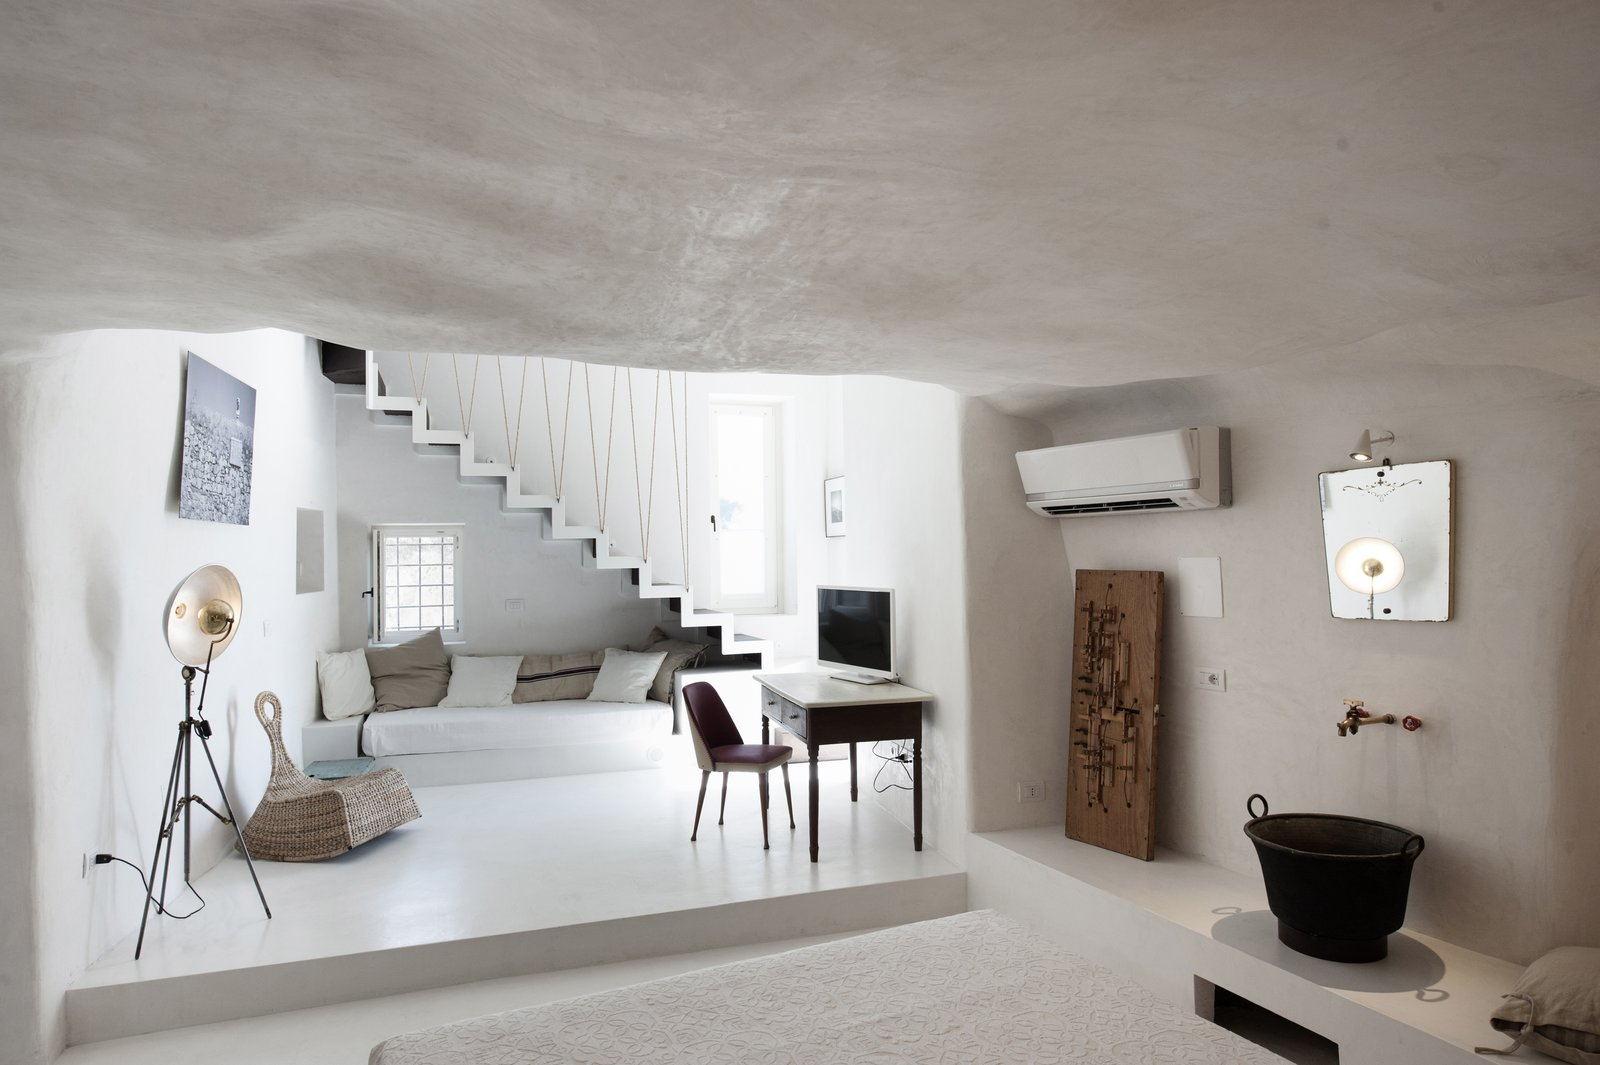 After relocating from Milan to the small Baroque town of Modica in Sicily, architect couple Marco Giunta and Viviana Haddad  purchased and restored an old house they found with locally sourced stones, tiles and plaster. They now operate it as Casa Talia – a boutique hotel where guests can experience life at a more leisurely pace. Tagged: Living Room, Lamps, Chair, Floor Lighting, Bench, and Concrete Floor.  Photo 6 of 11 in Ever Wanted to Stay in a Cave That's Actually Pretty Modern Inside?